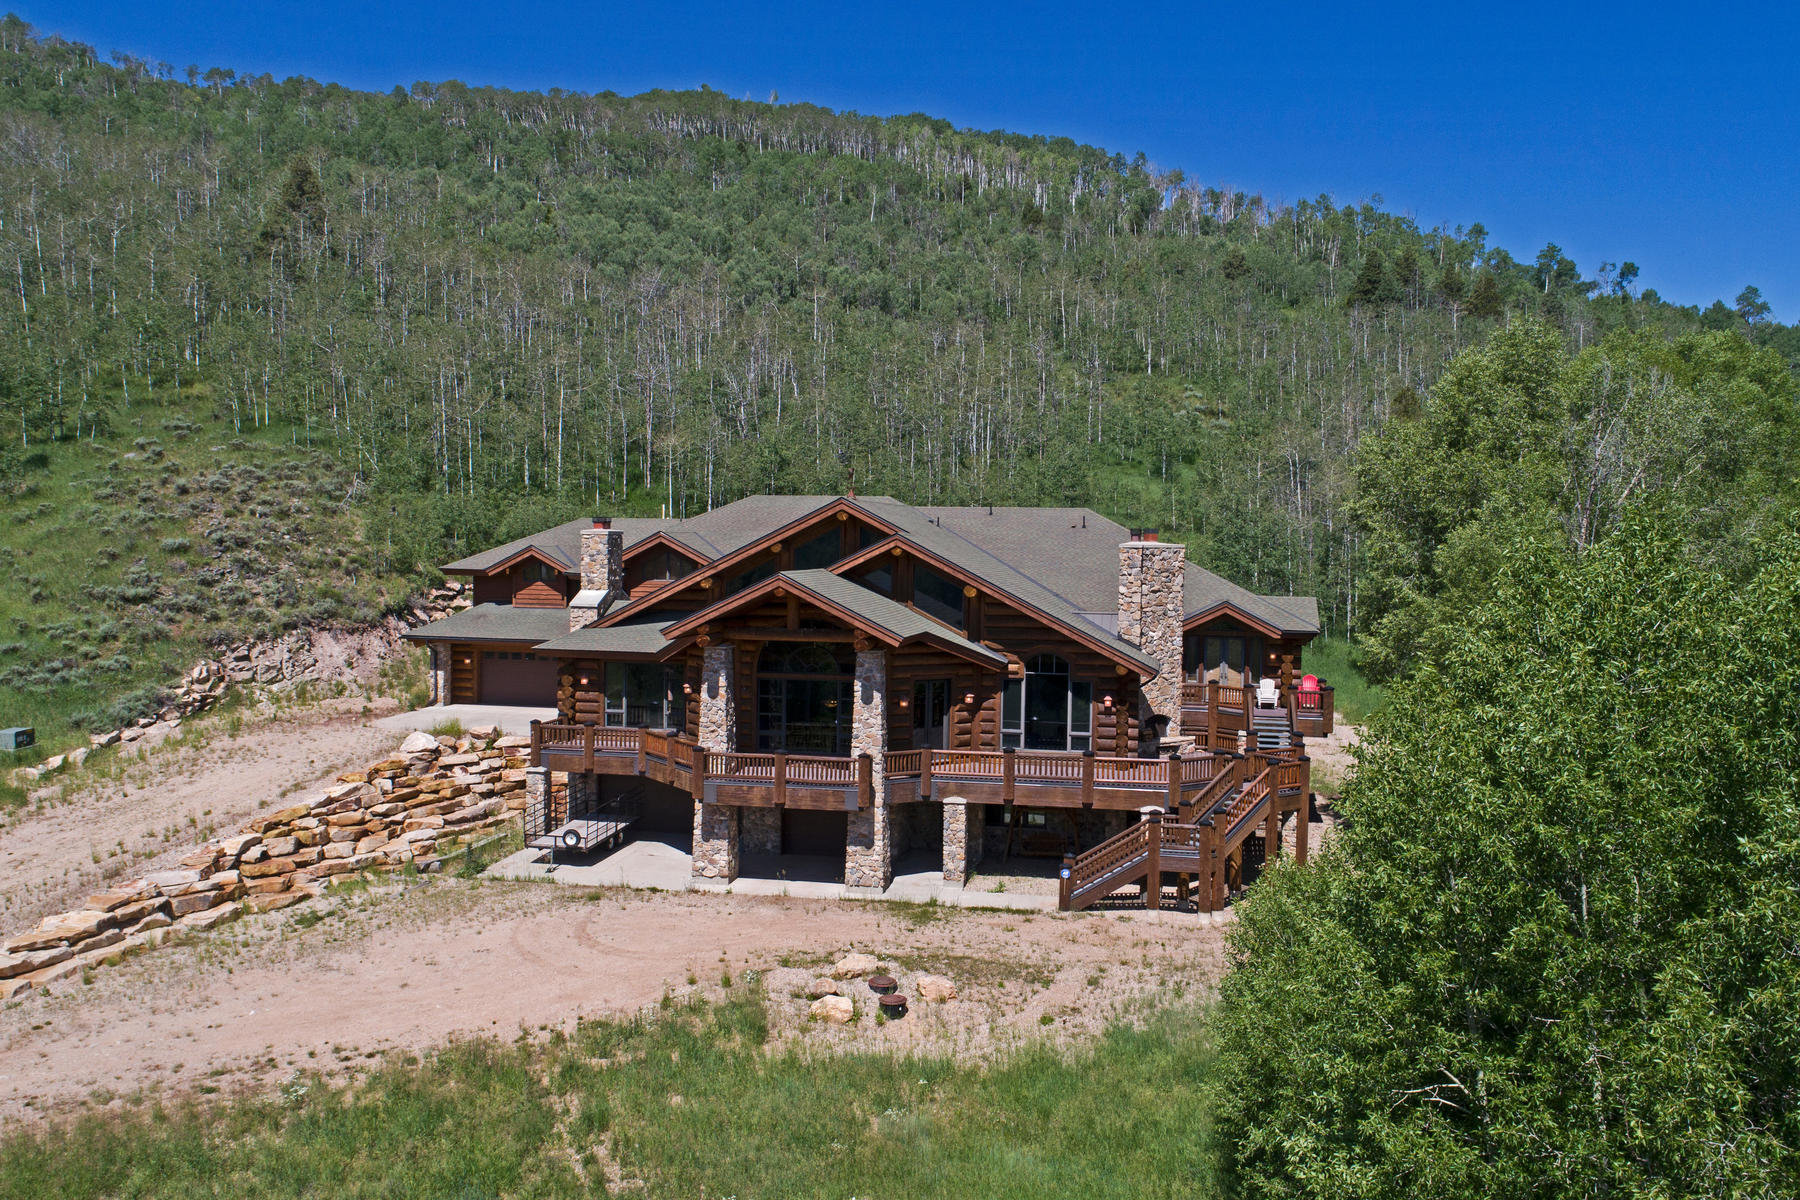 Additional photo for property listing at Amazing One of a Kind Log Home on 160 Acres! 3950 E Weber Canyon Rd Oakley, Utah 84055 United States